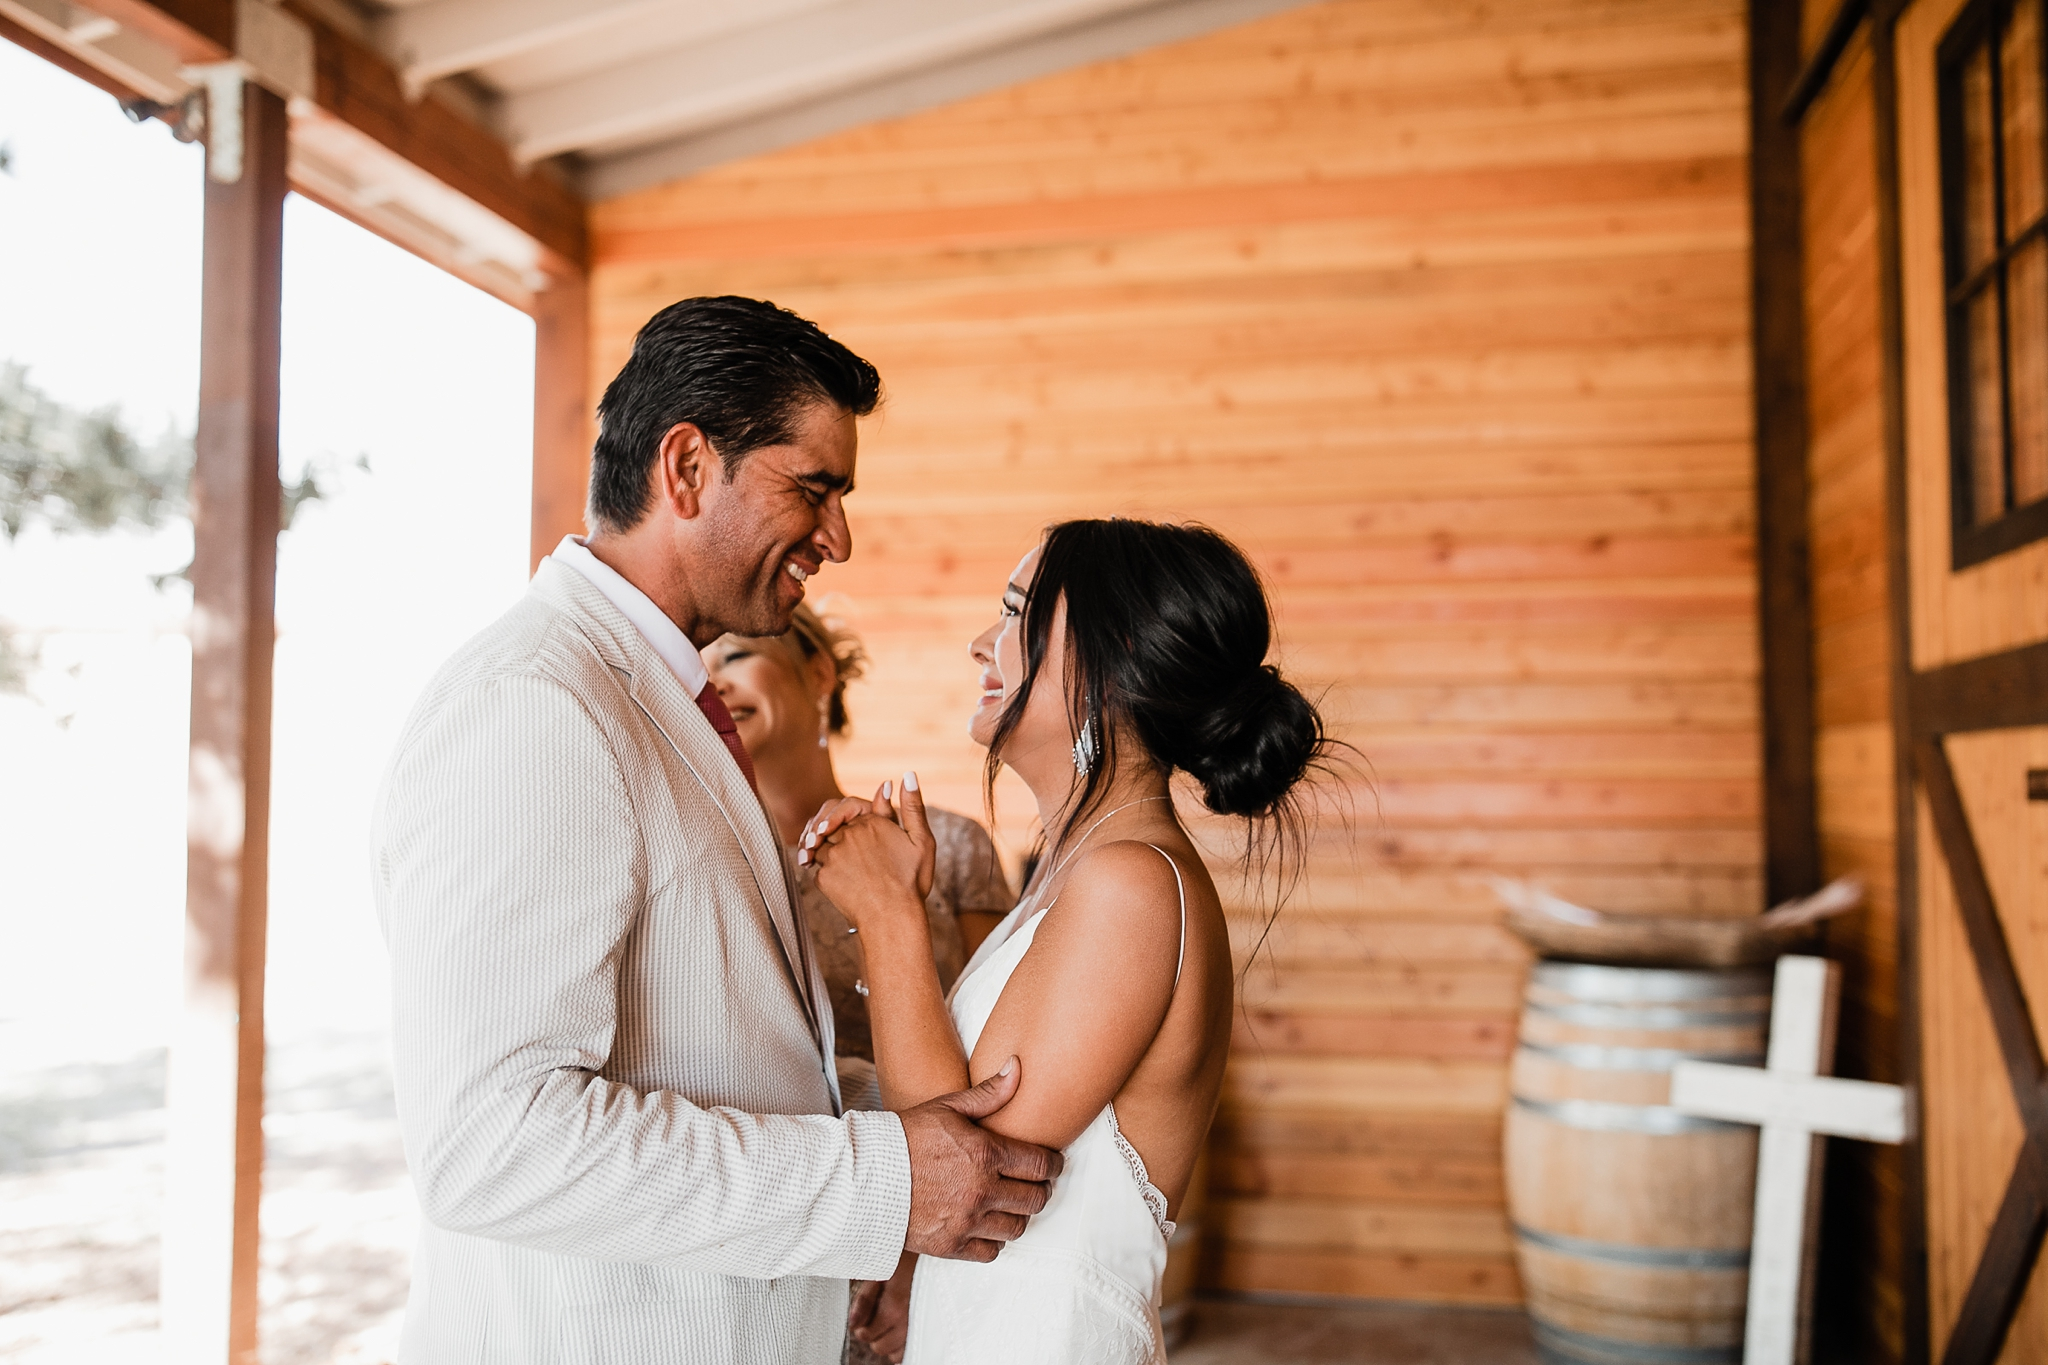 Alicia+lucia+photography+-+albuquerque+wedding+photographer+-+santa+fe+wedding+photography+-+new+mexico+wedding+photographer+-+new+mexico+wedding+-+new+mexico+wedding+-+barn+wedding+-+enchanted+vine+barn+wedding+-+ruidoso+wedding_0063.jpg